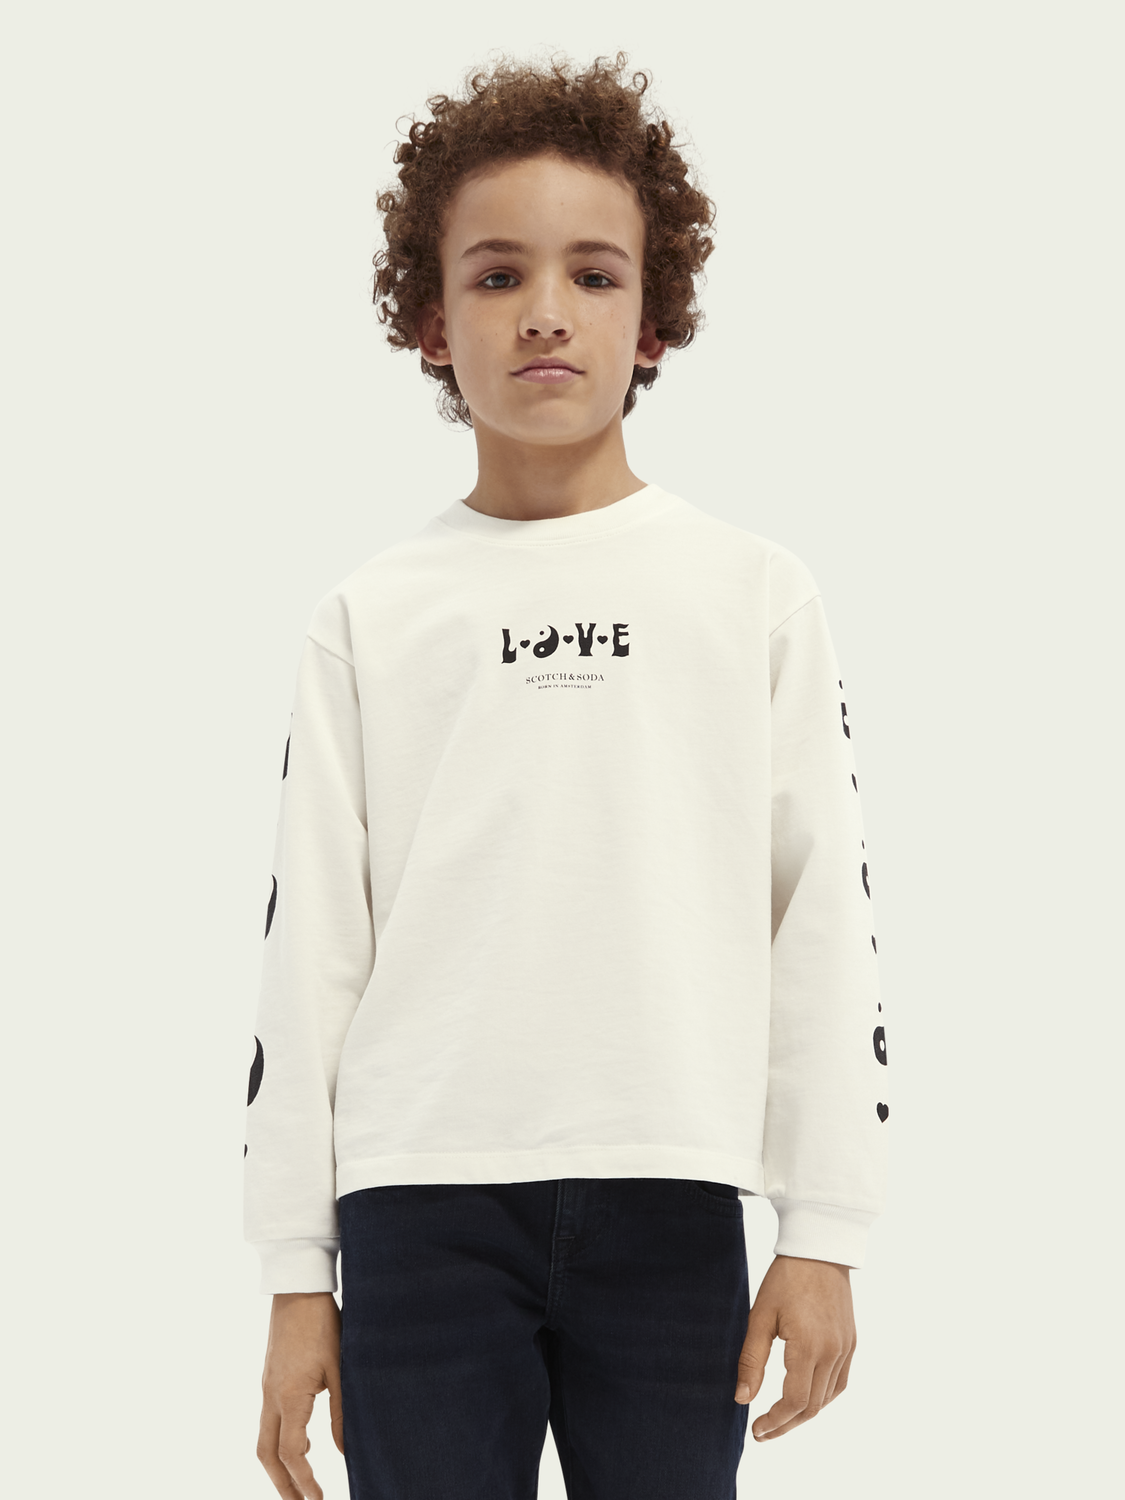 Women BORN TO LOVE kids unisex organic cotton long-sleeved T-shirt